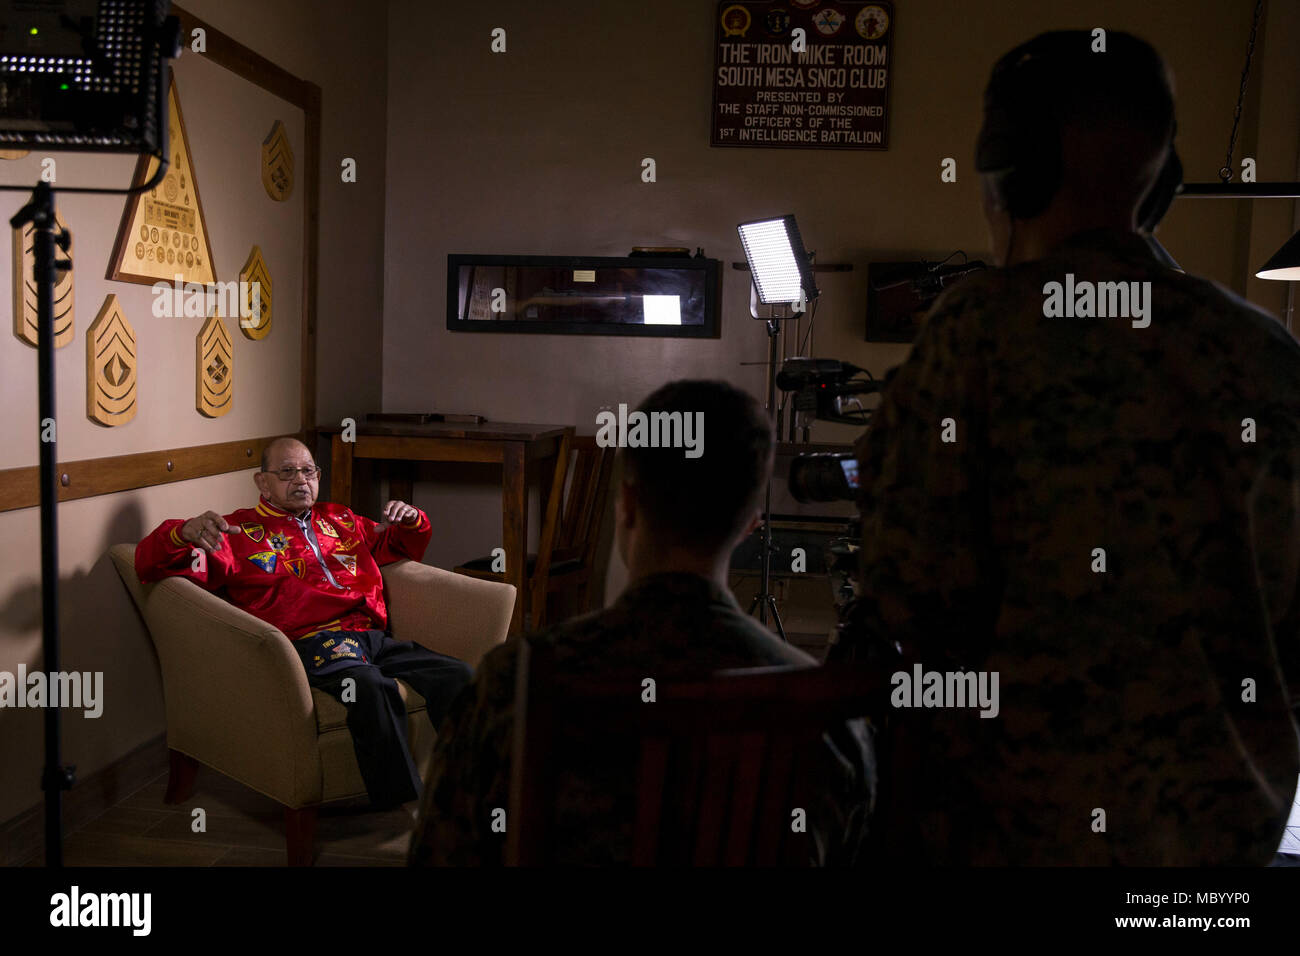 Retired Gunnery Sgt. Damaso Sutis speaks about his experience at the battle of Iwo Jima during an interview at Iron Mike's on Camp Pendleton, Calif., Jan. 17, 2018. During WWII the United Sates Marine Corps landed on and eventually captured the island of Iwo Jima from the Imperial Japanese Army, suffering heavy casualties. (U.S. Marine Corps photo by Lance Cpl. Betzabeth Y. Galvan) - Stock Image